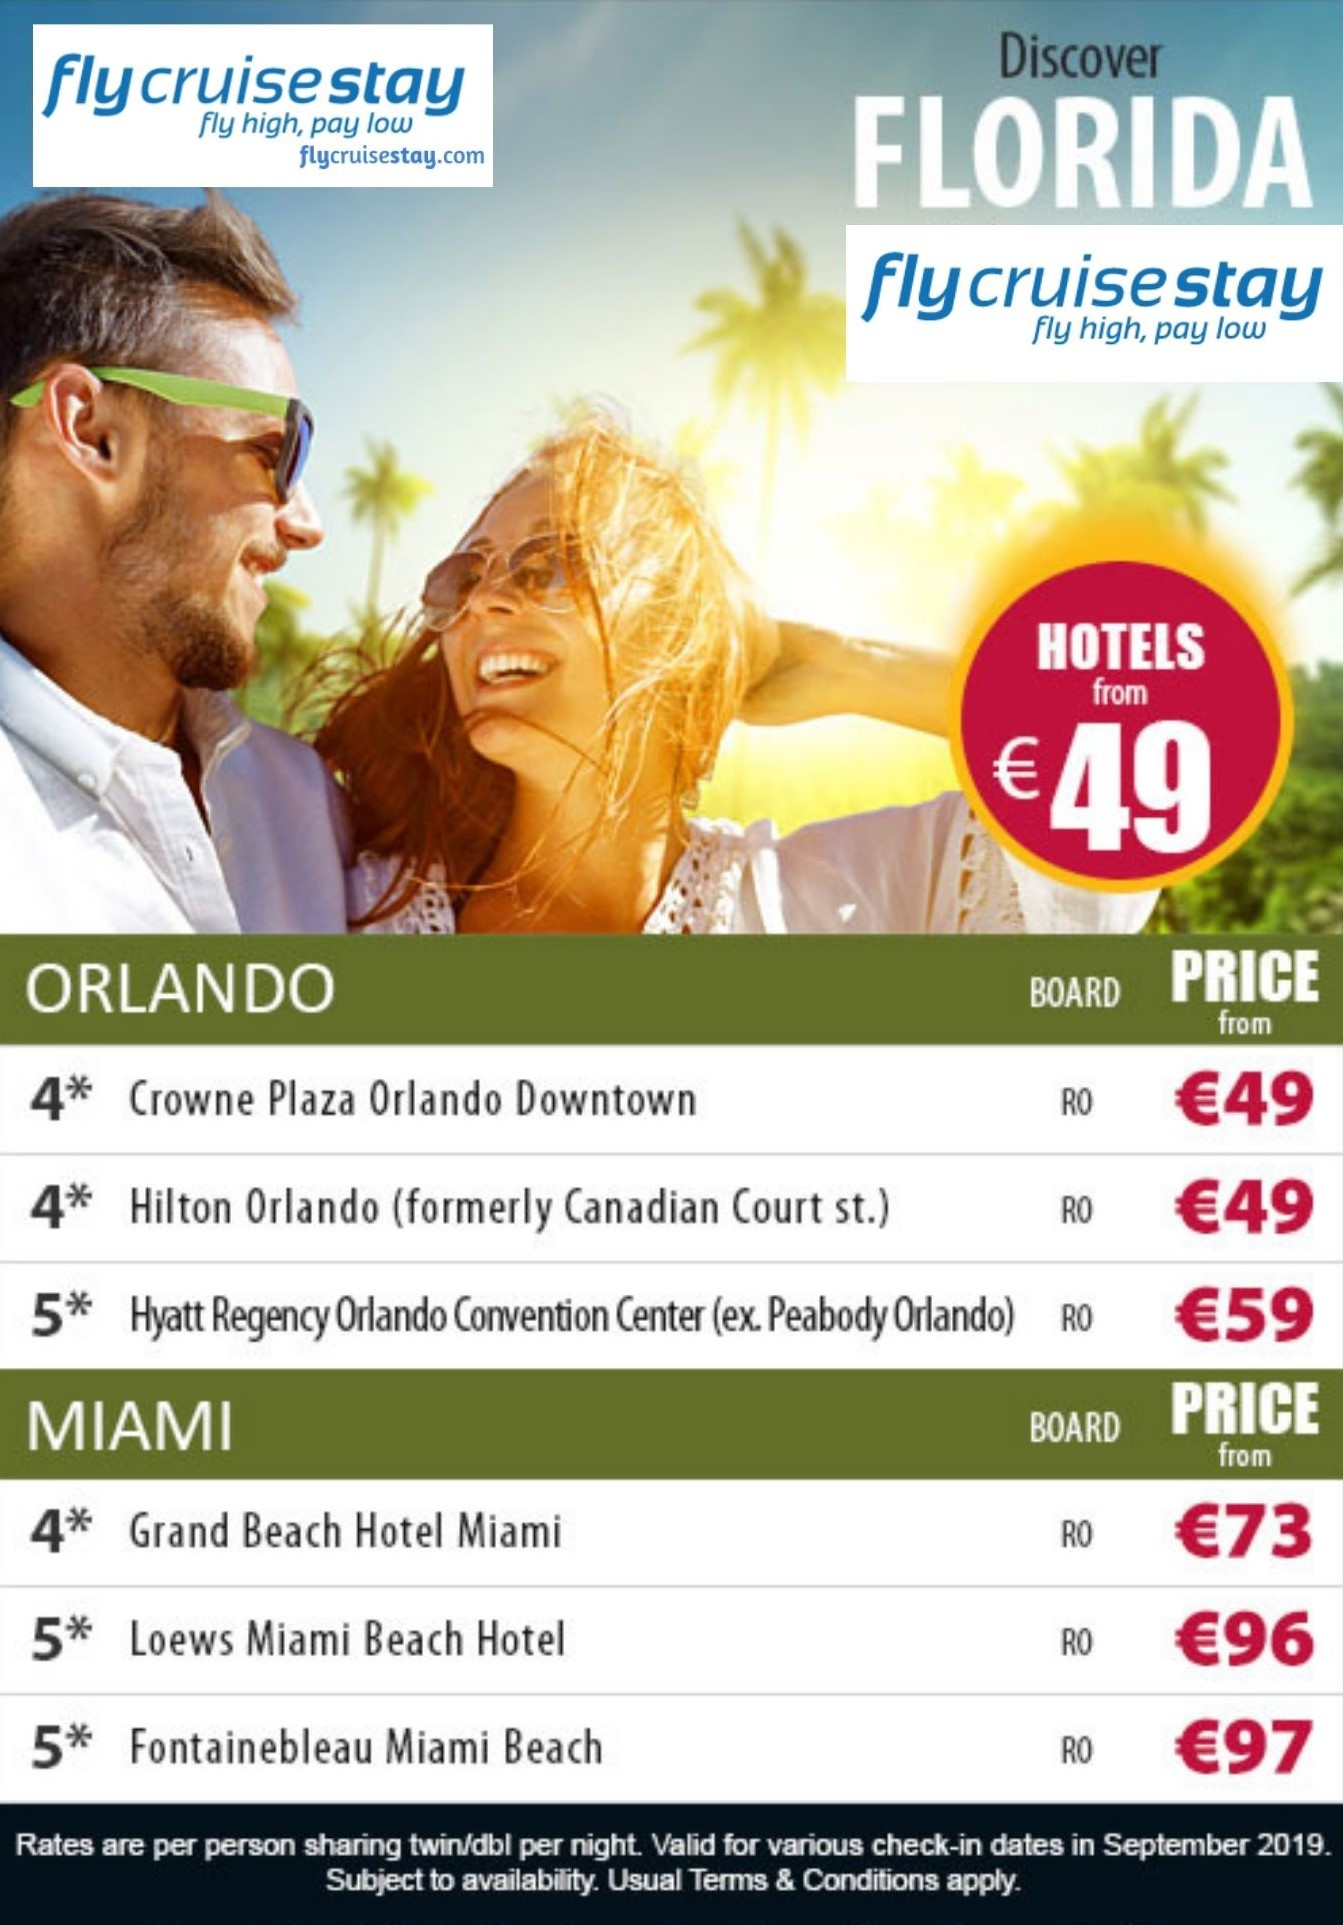 Orlando and Miami Hotel Deals